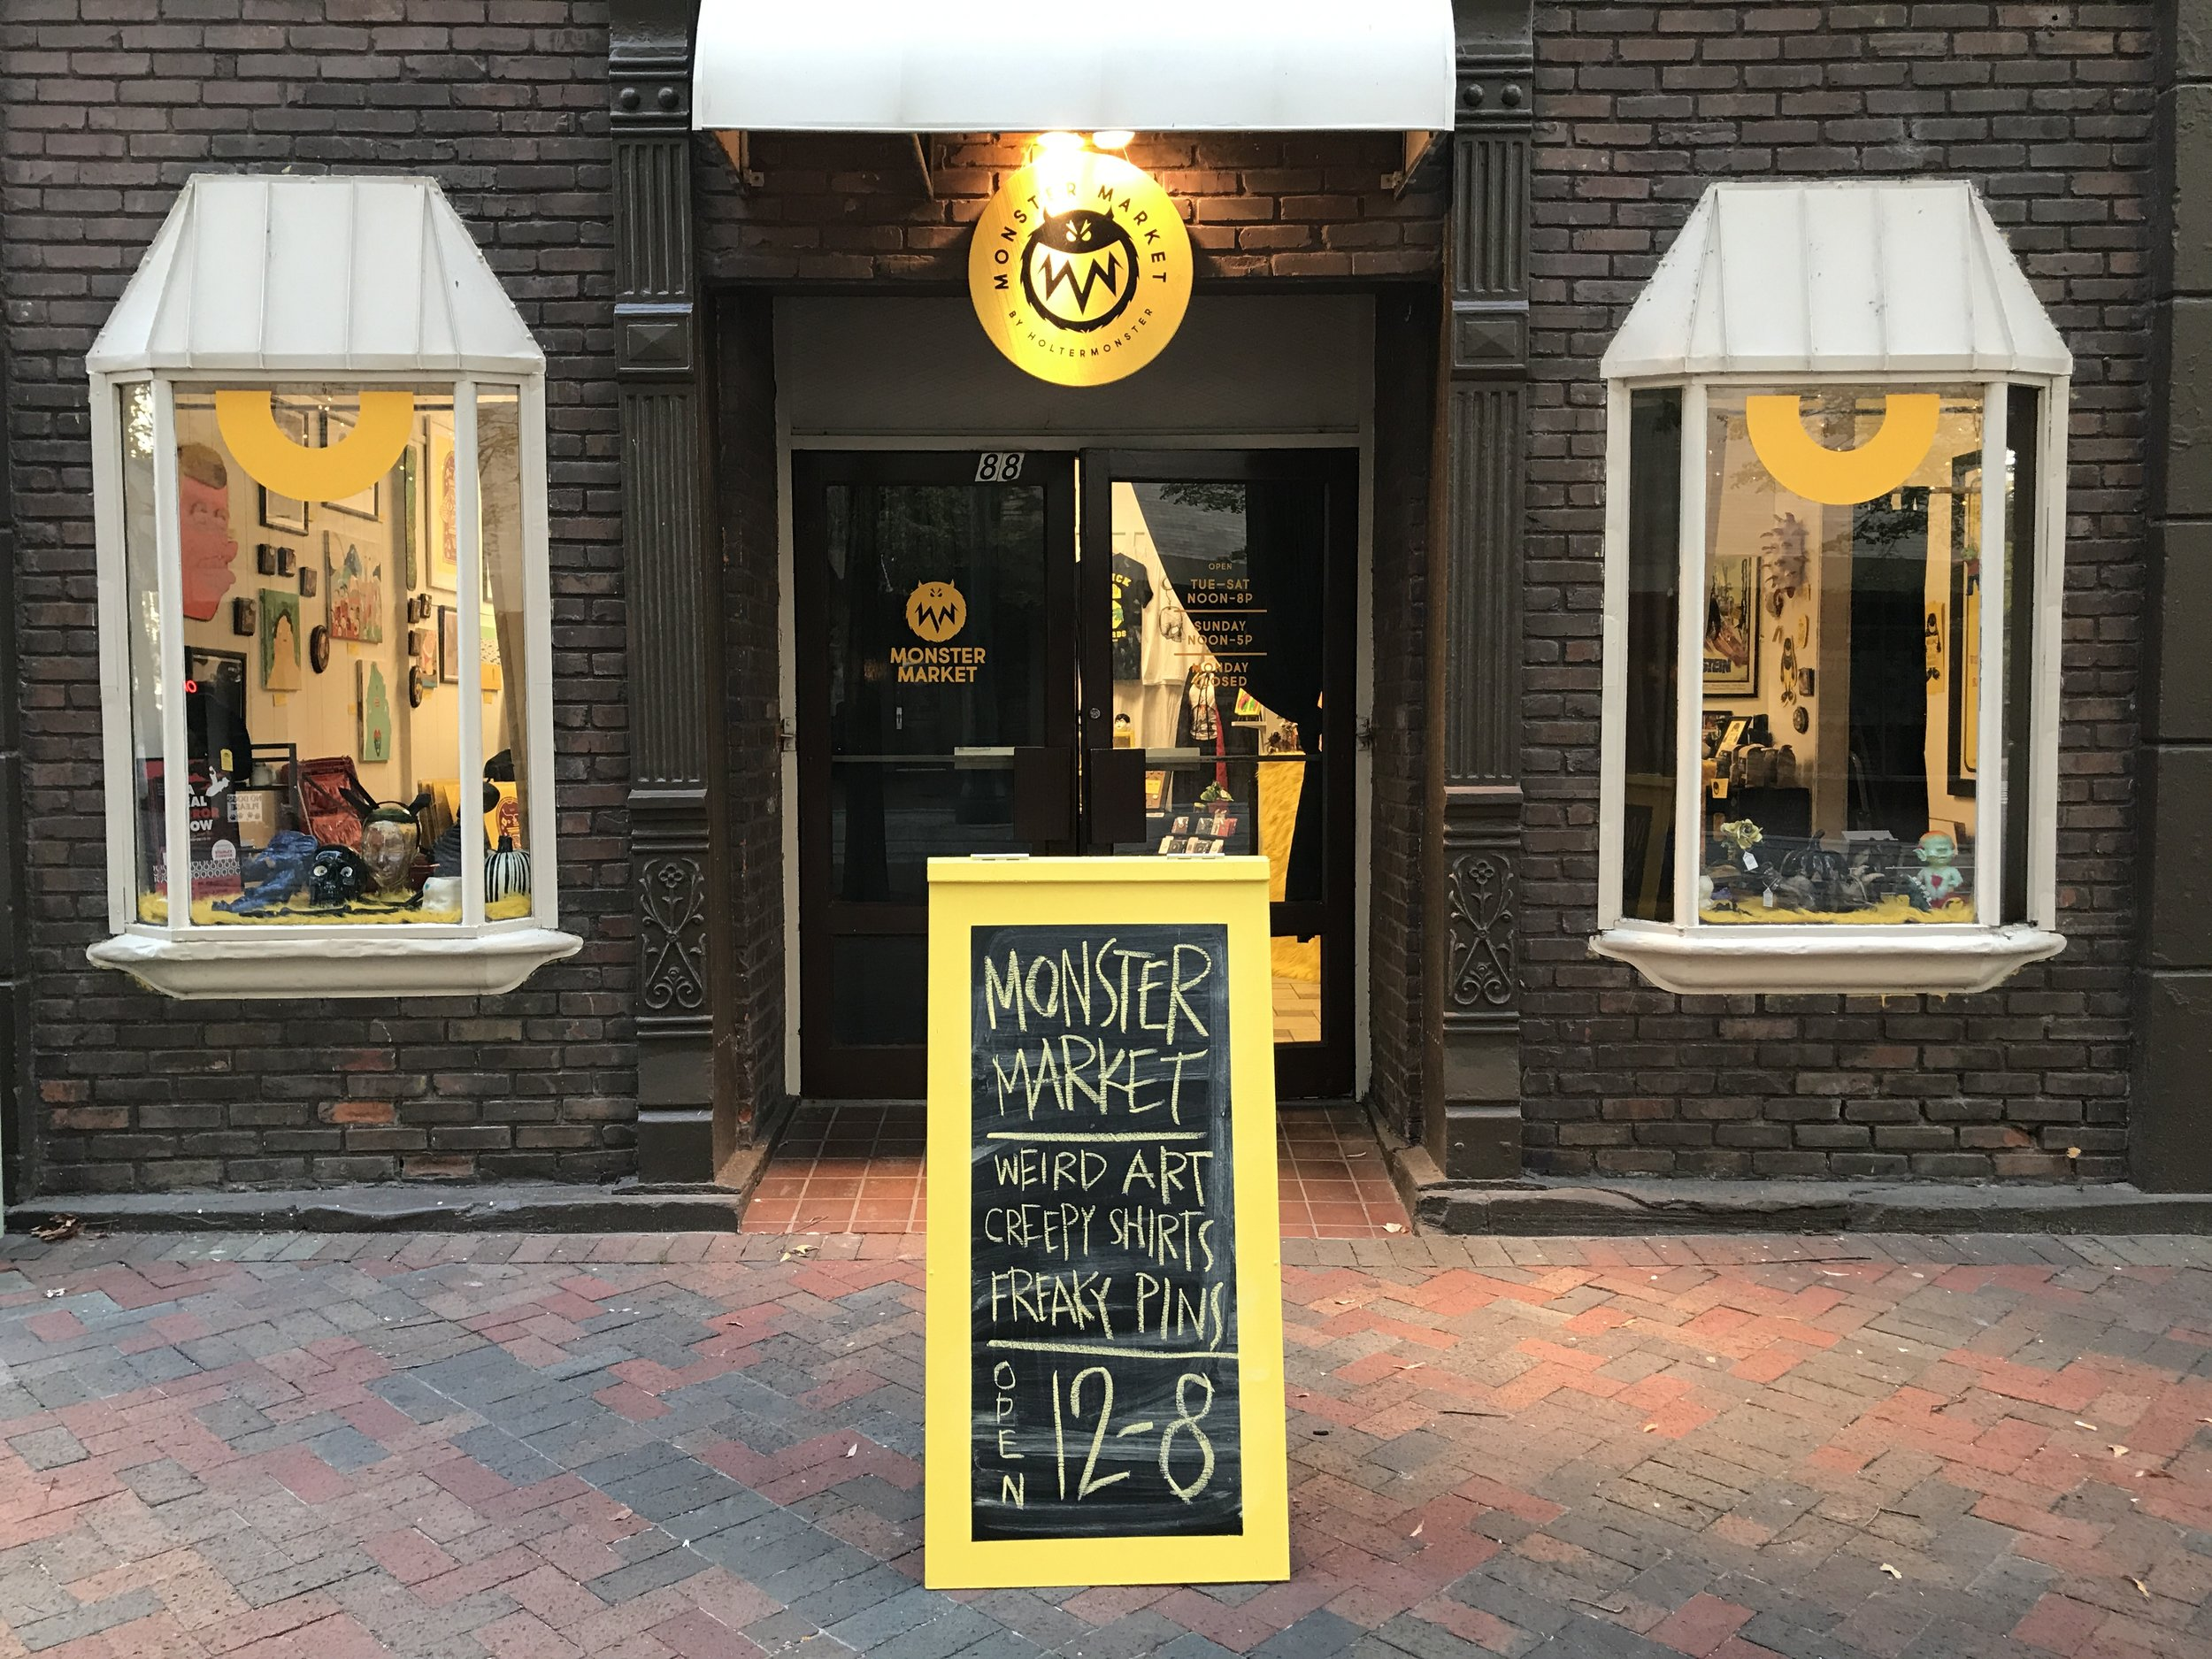 88 N. Main — the site of the first Monster Market pop-up during October 2017, and one of many chalkboard designs from the month